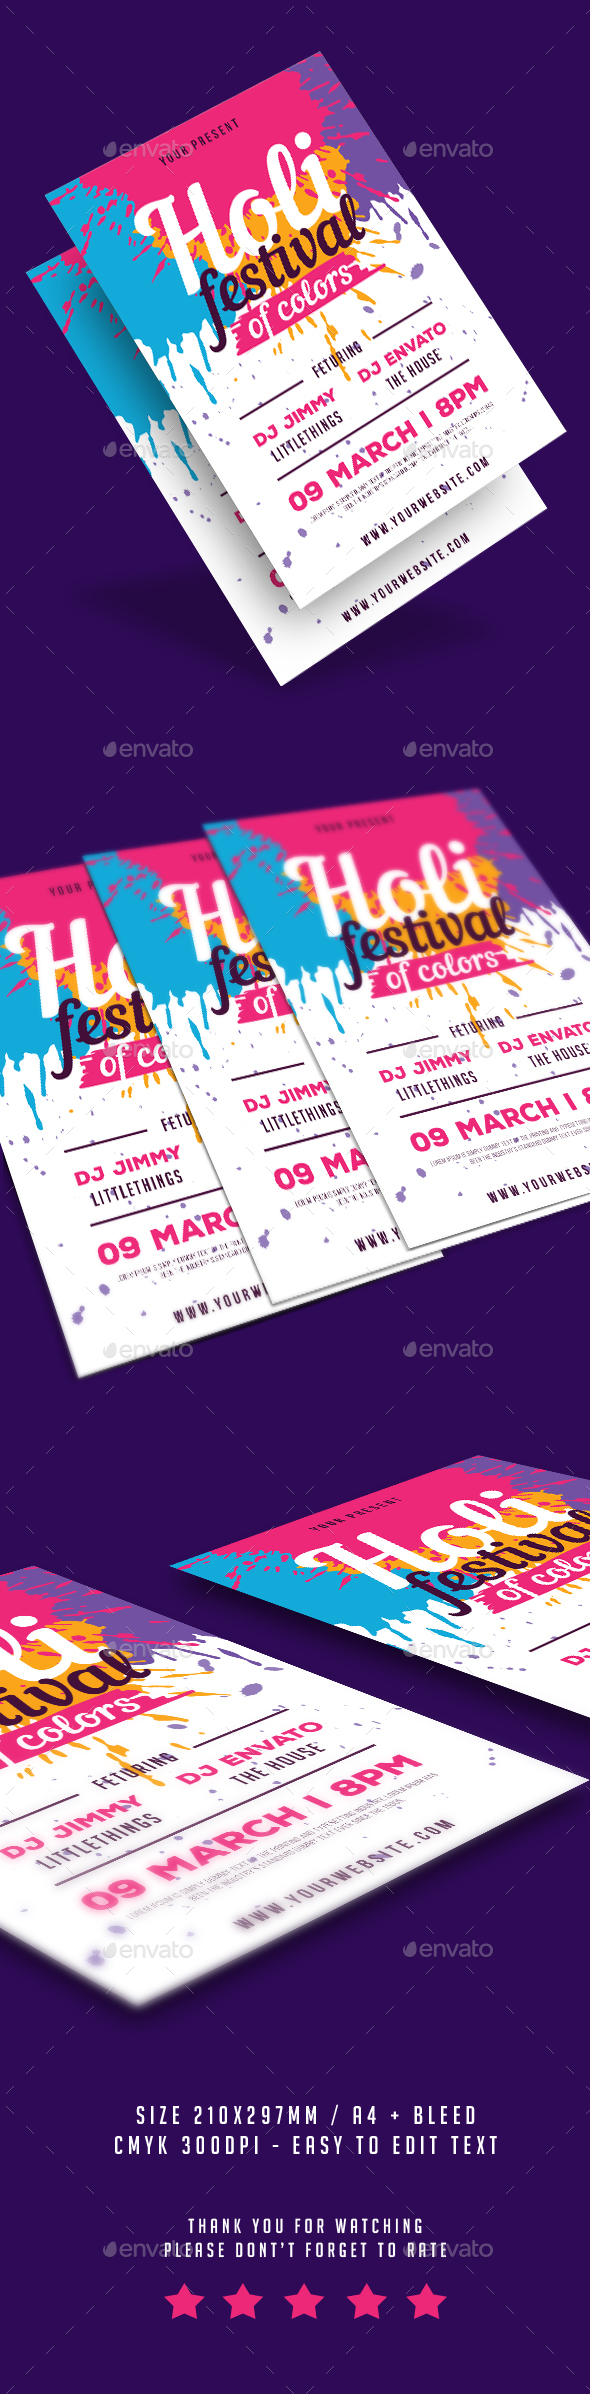 Holi Festival of ColorsFlyer - Events Flyers